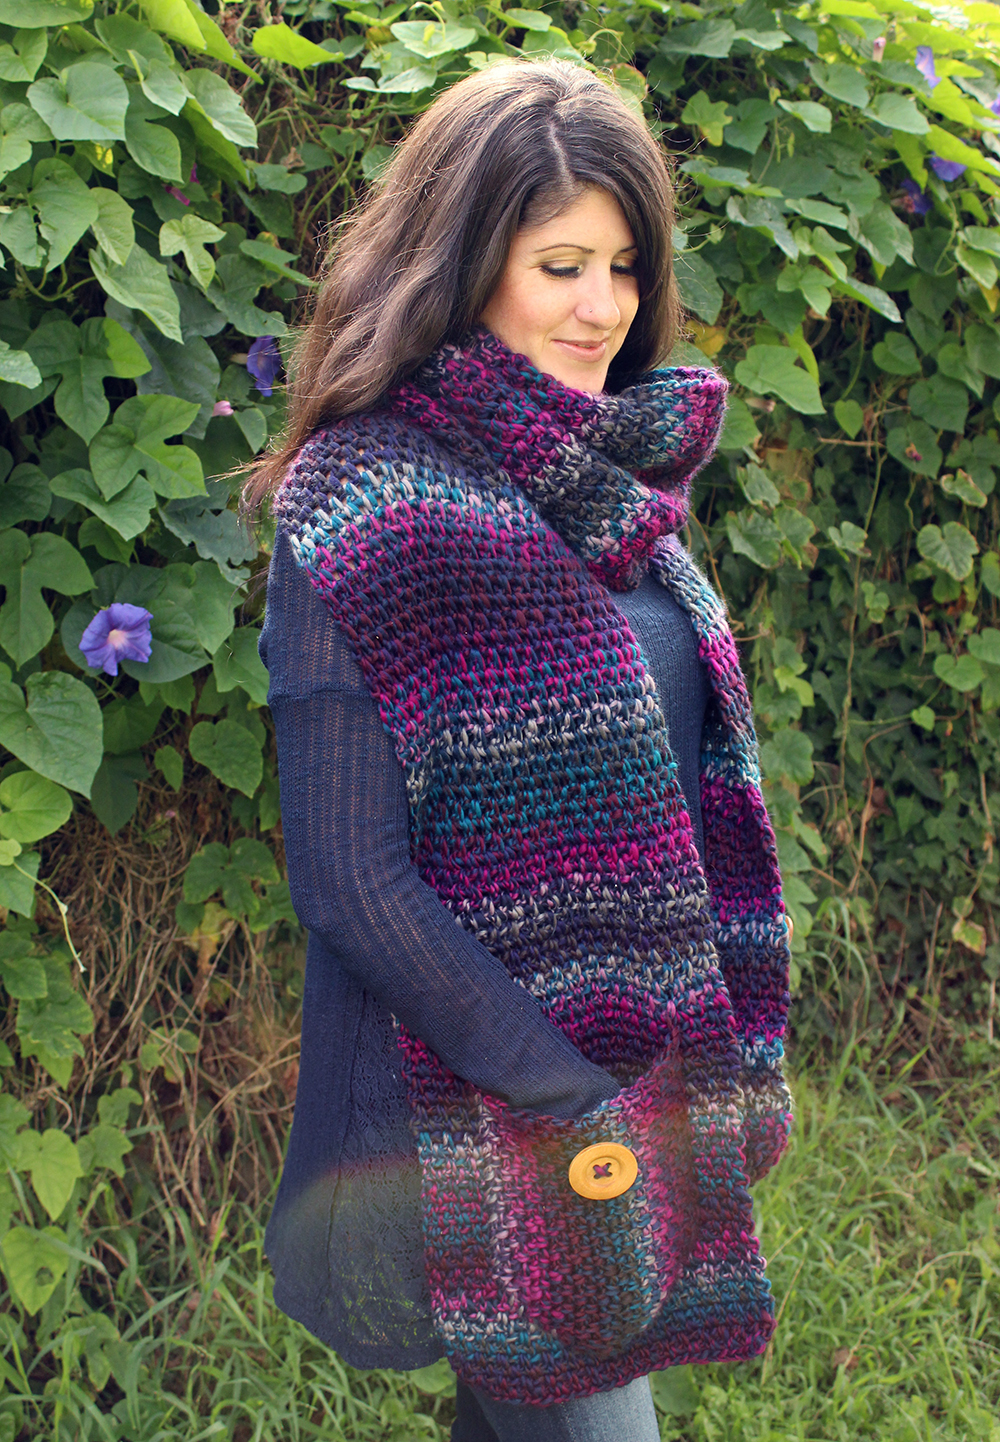 Free Crochet Patterns Using Bulky Weight Yarn : Free Crochet Pattern: Amethyst Scarf